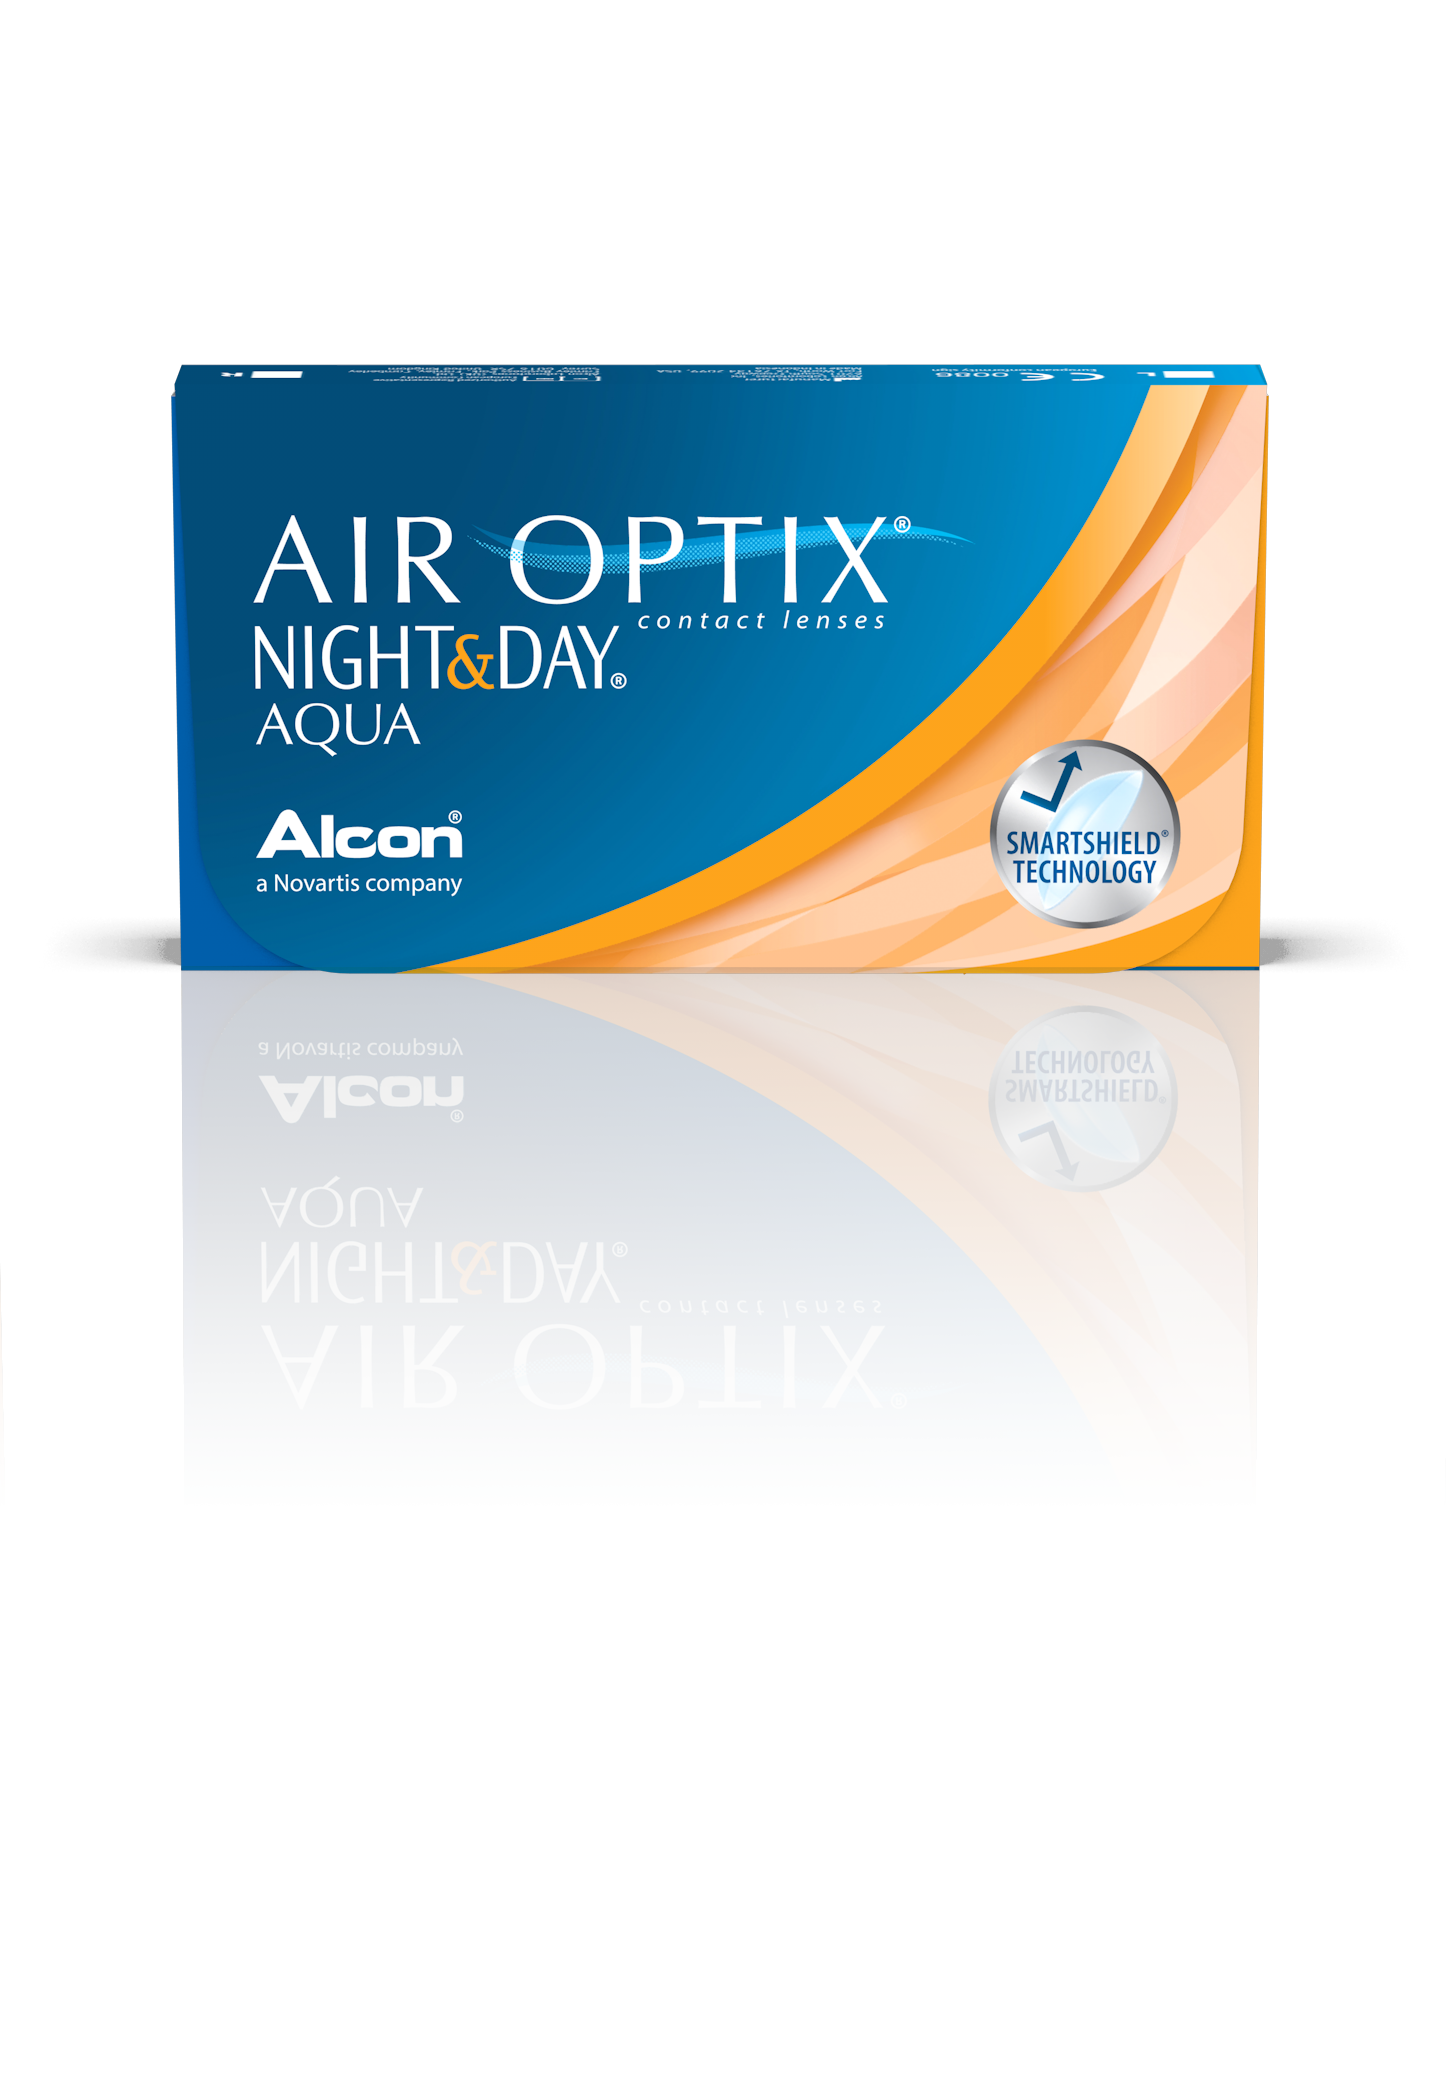 Air Optix Night and Day Aqua 6 Pack - Rescue Contacts b9f0aefe5e90b